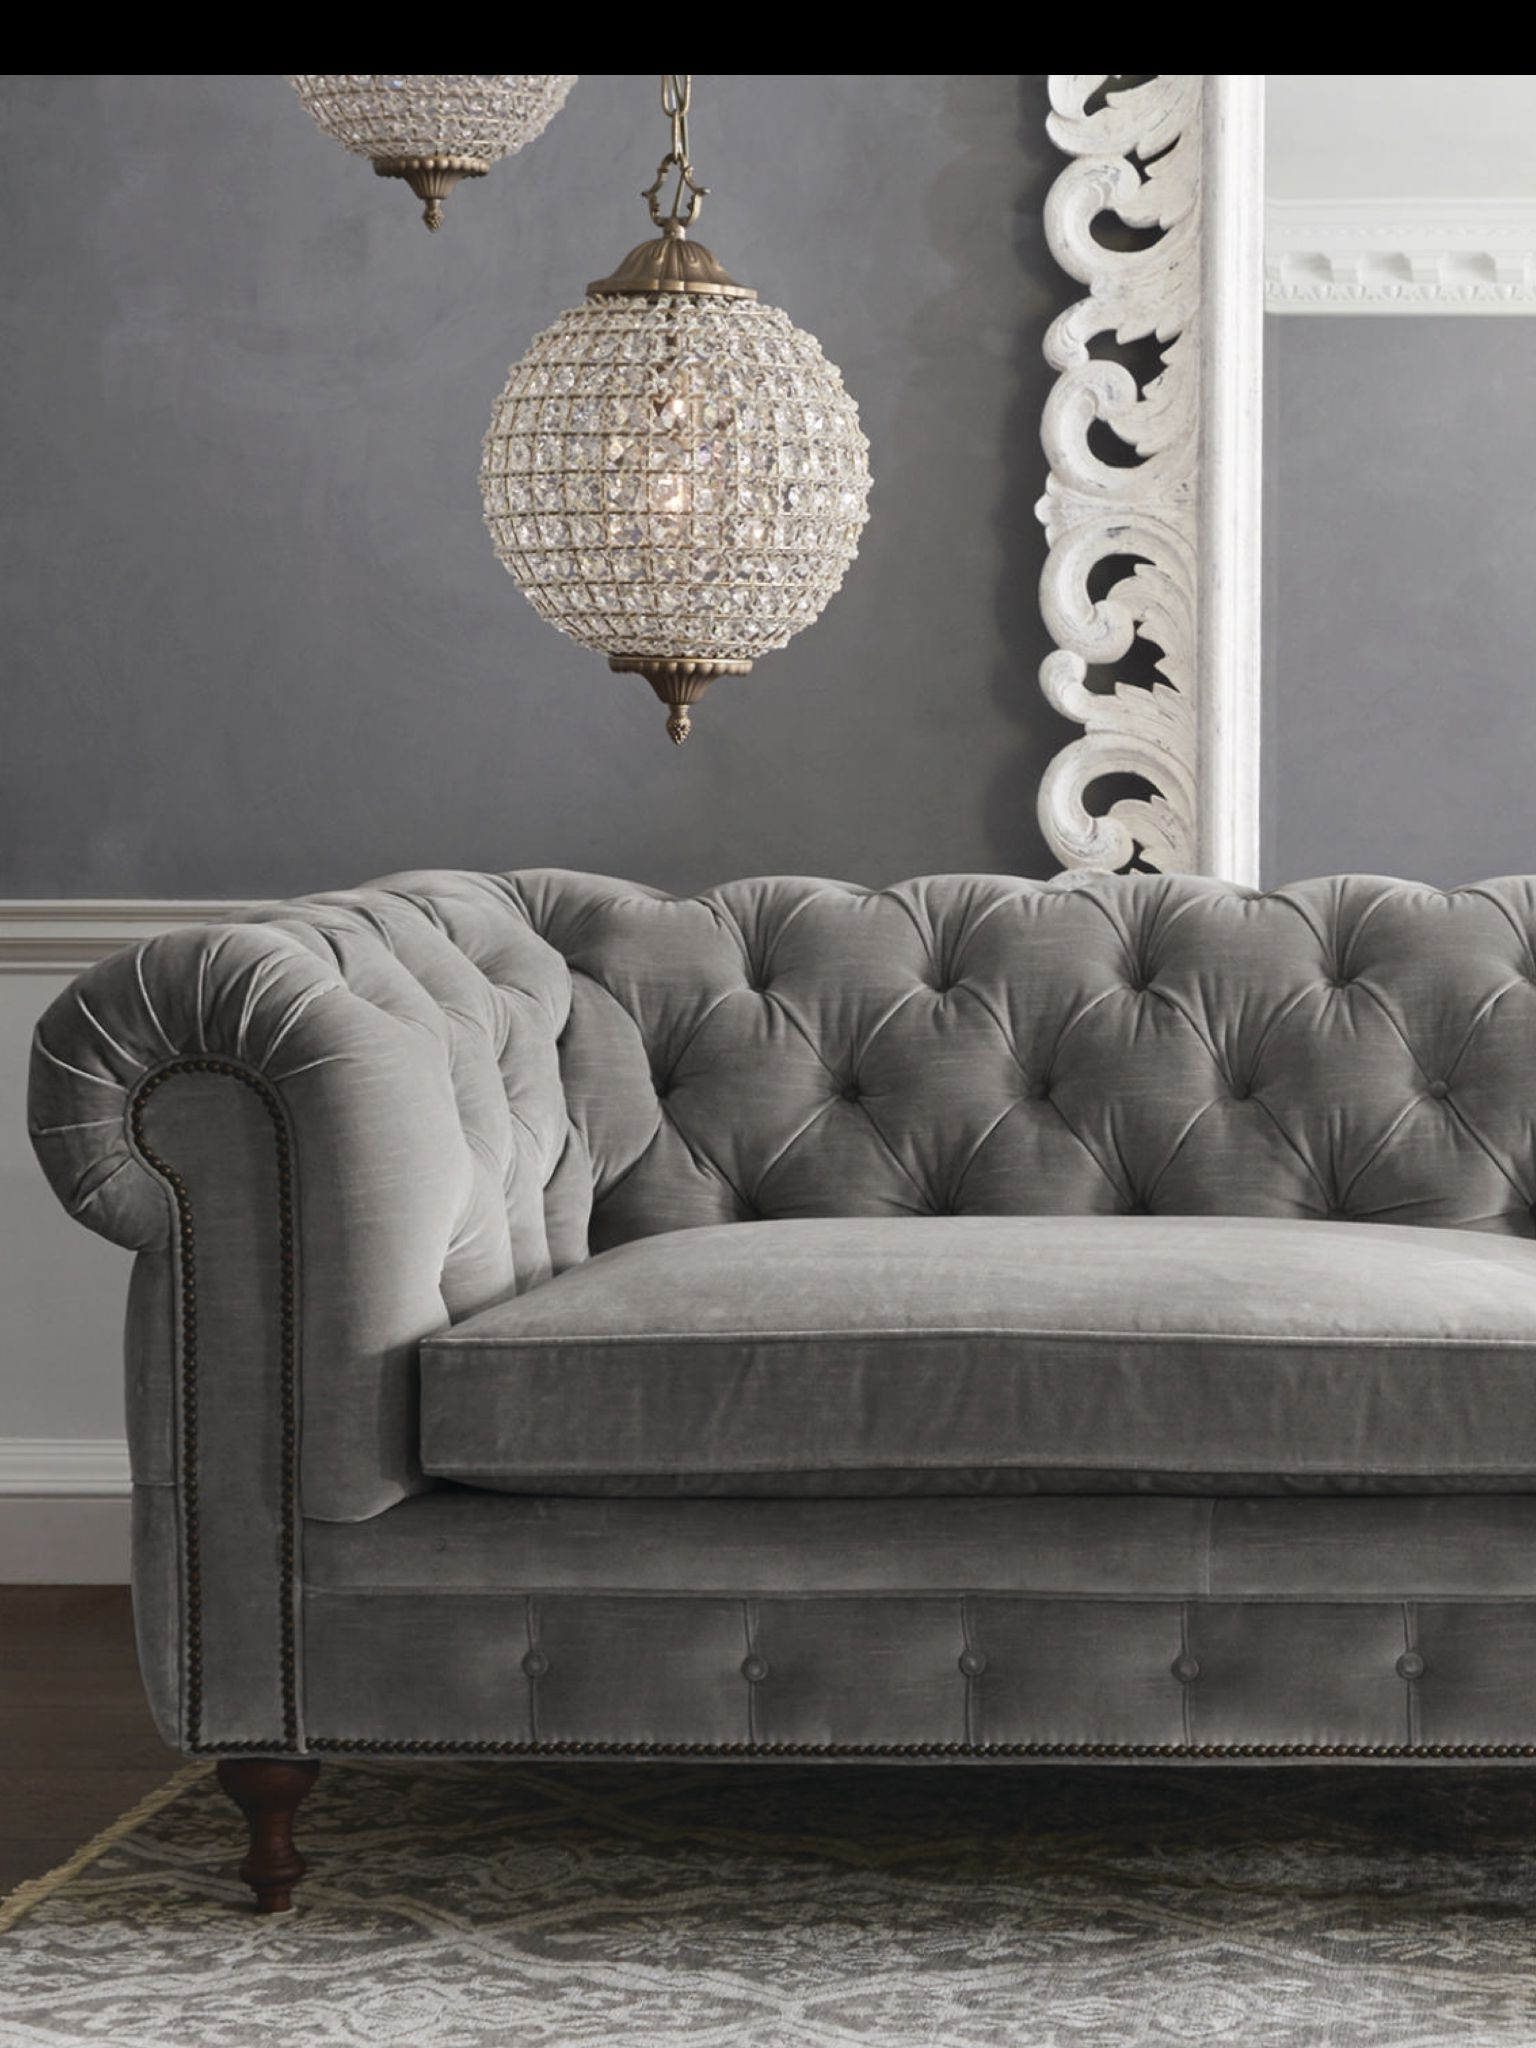 Sofa : Sleeper Sofa With Tufted Back Gray Tufted Settee Cheap Intended For Widely Used Affordable Tufted Sofas (View 15 of 20)